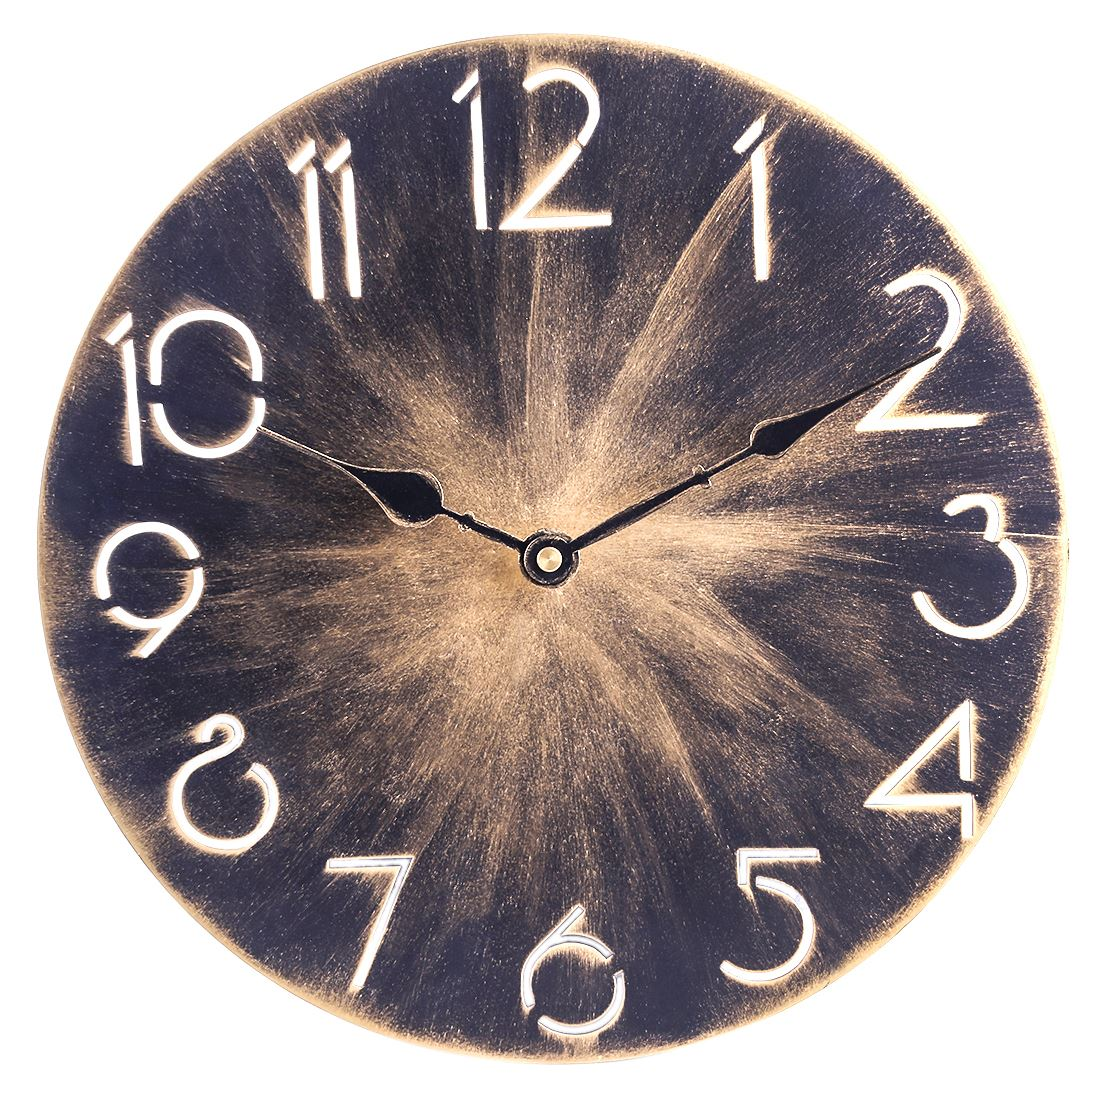 30Cm Iron Art Countryside Silent Beautiful Wall Clocks For Home Decor Large Watch Wall Clock Vintage Modern Design - Retro Color